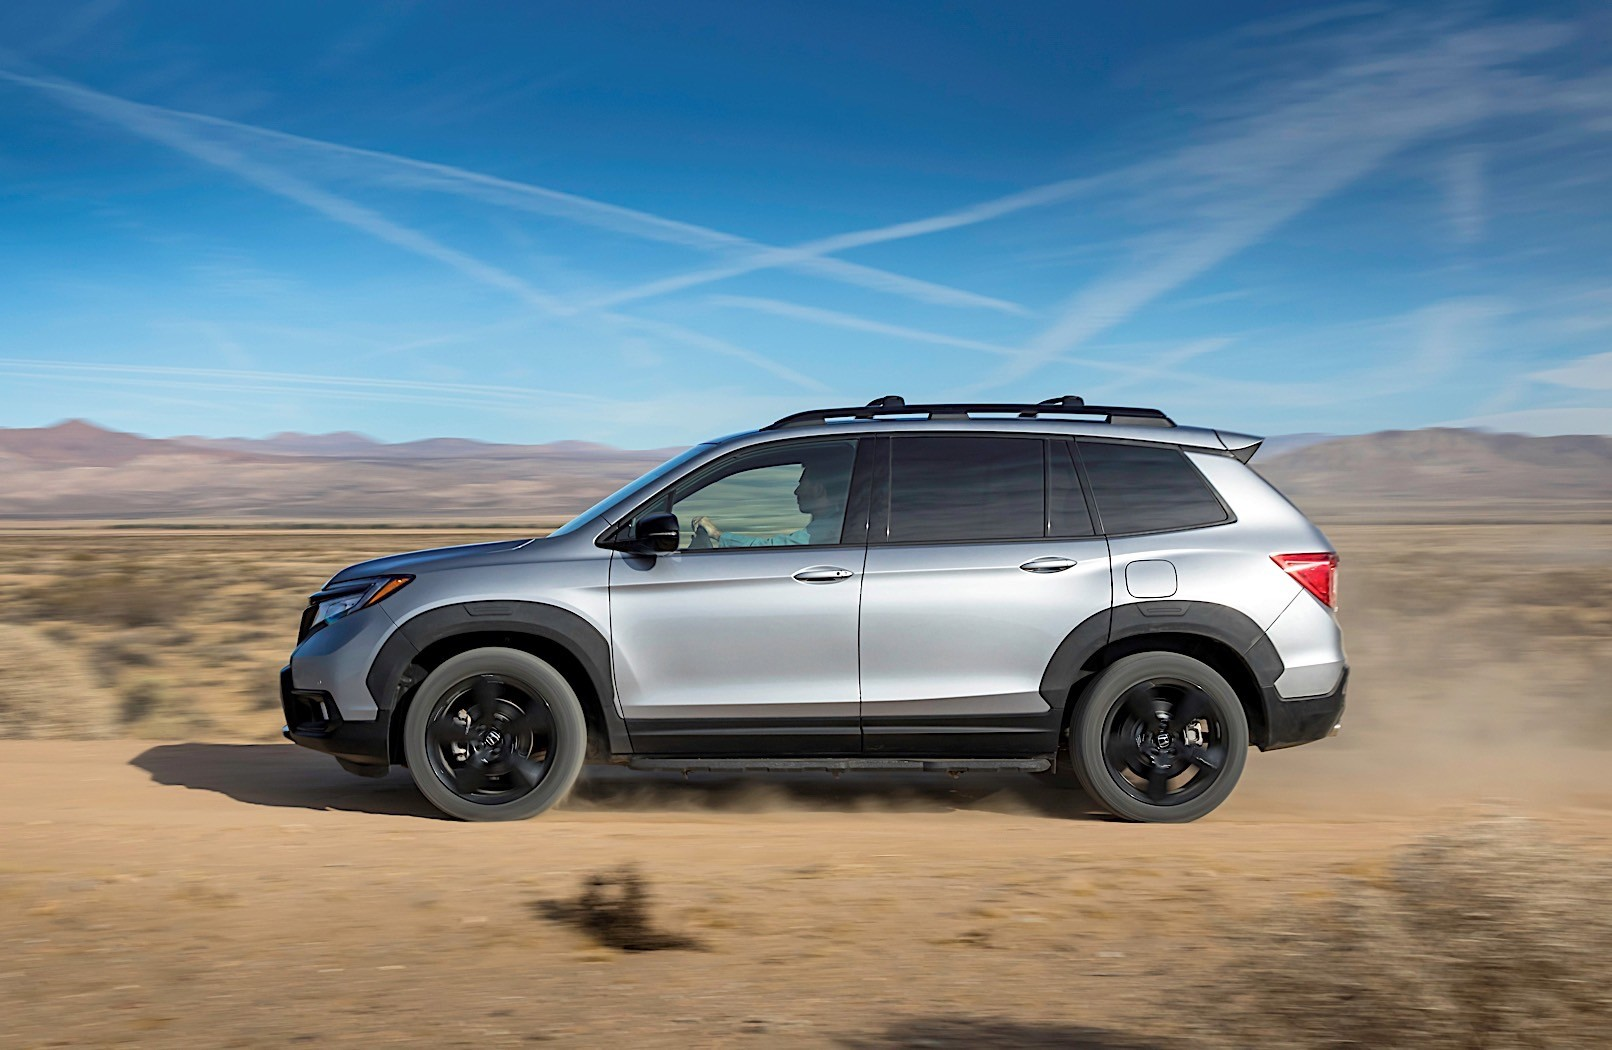 Honda Pilot Towing Capacity >> Honda Alabama Starts Production Of 2019 Passport - autoevolution